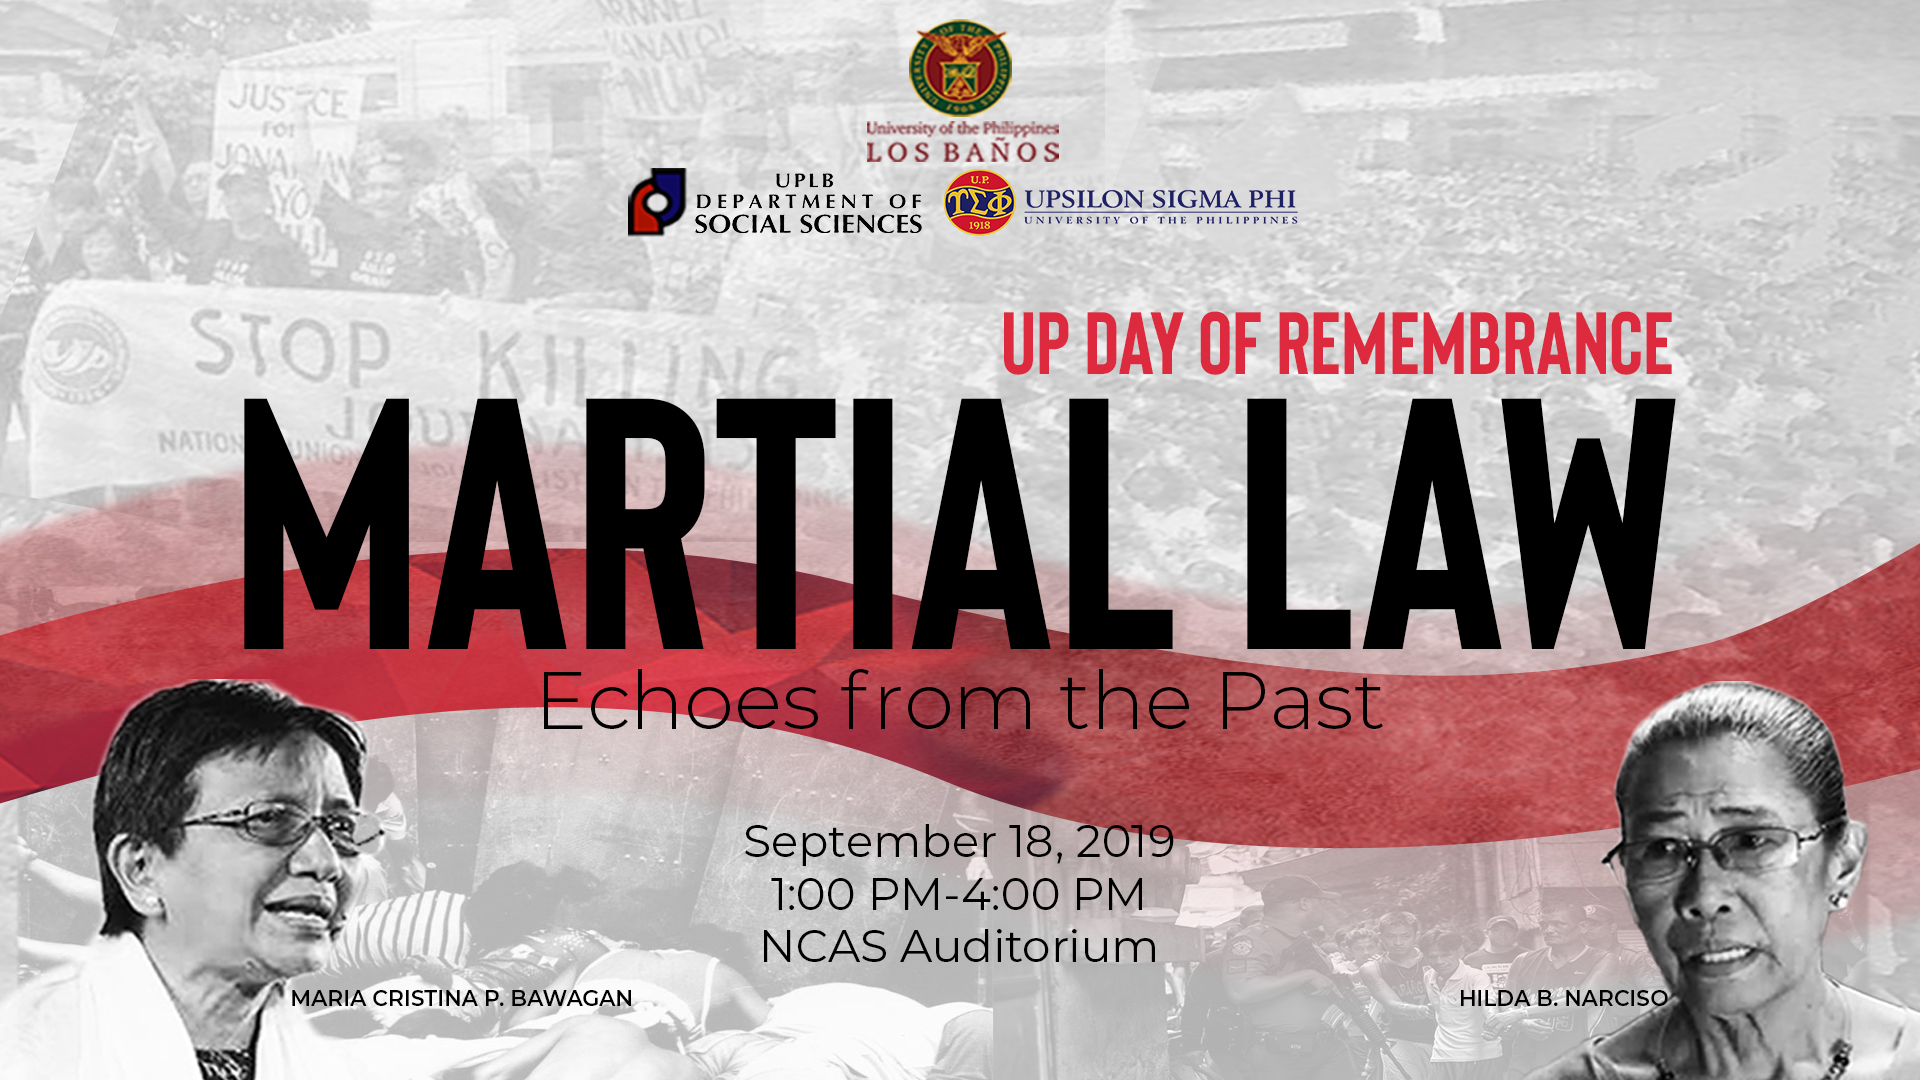 UPLB to celebrate UP Day of Remembrance